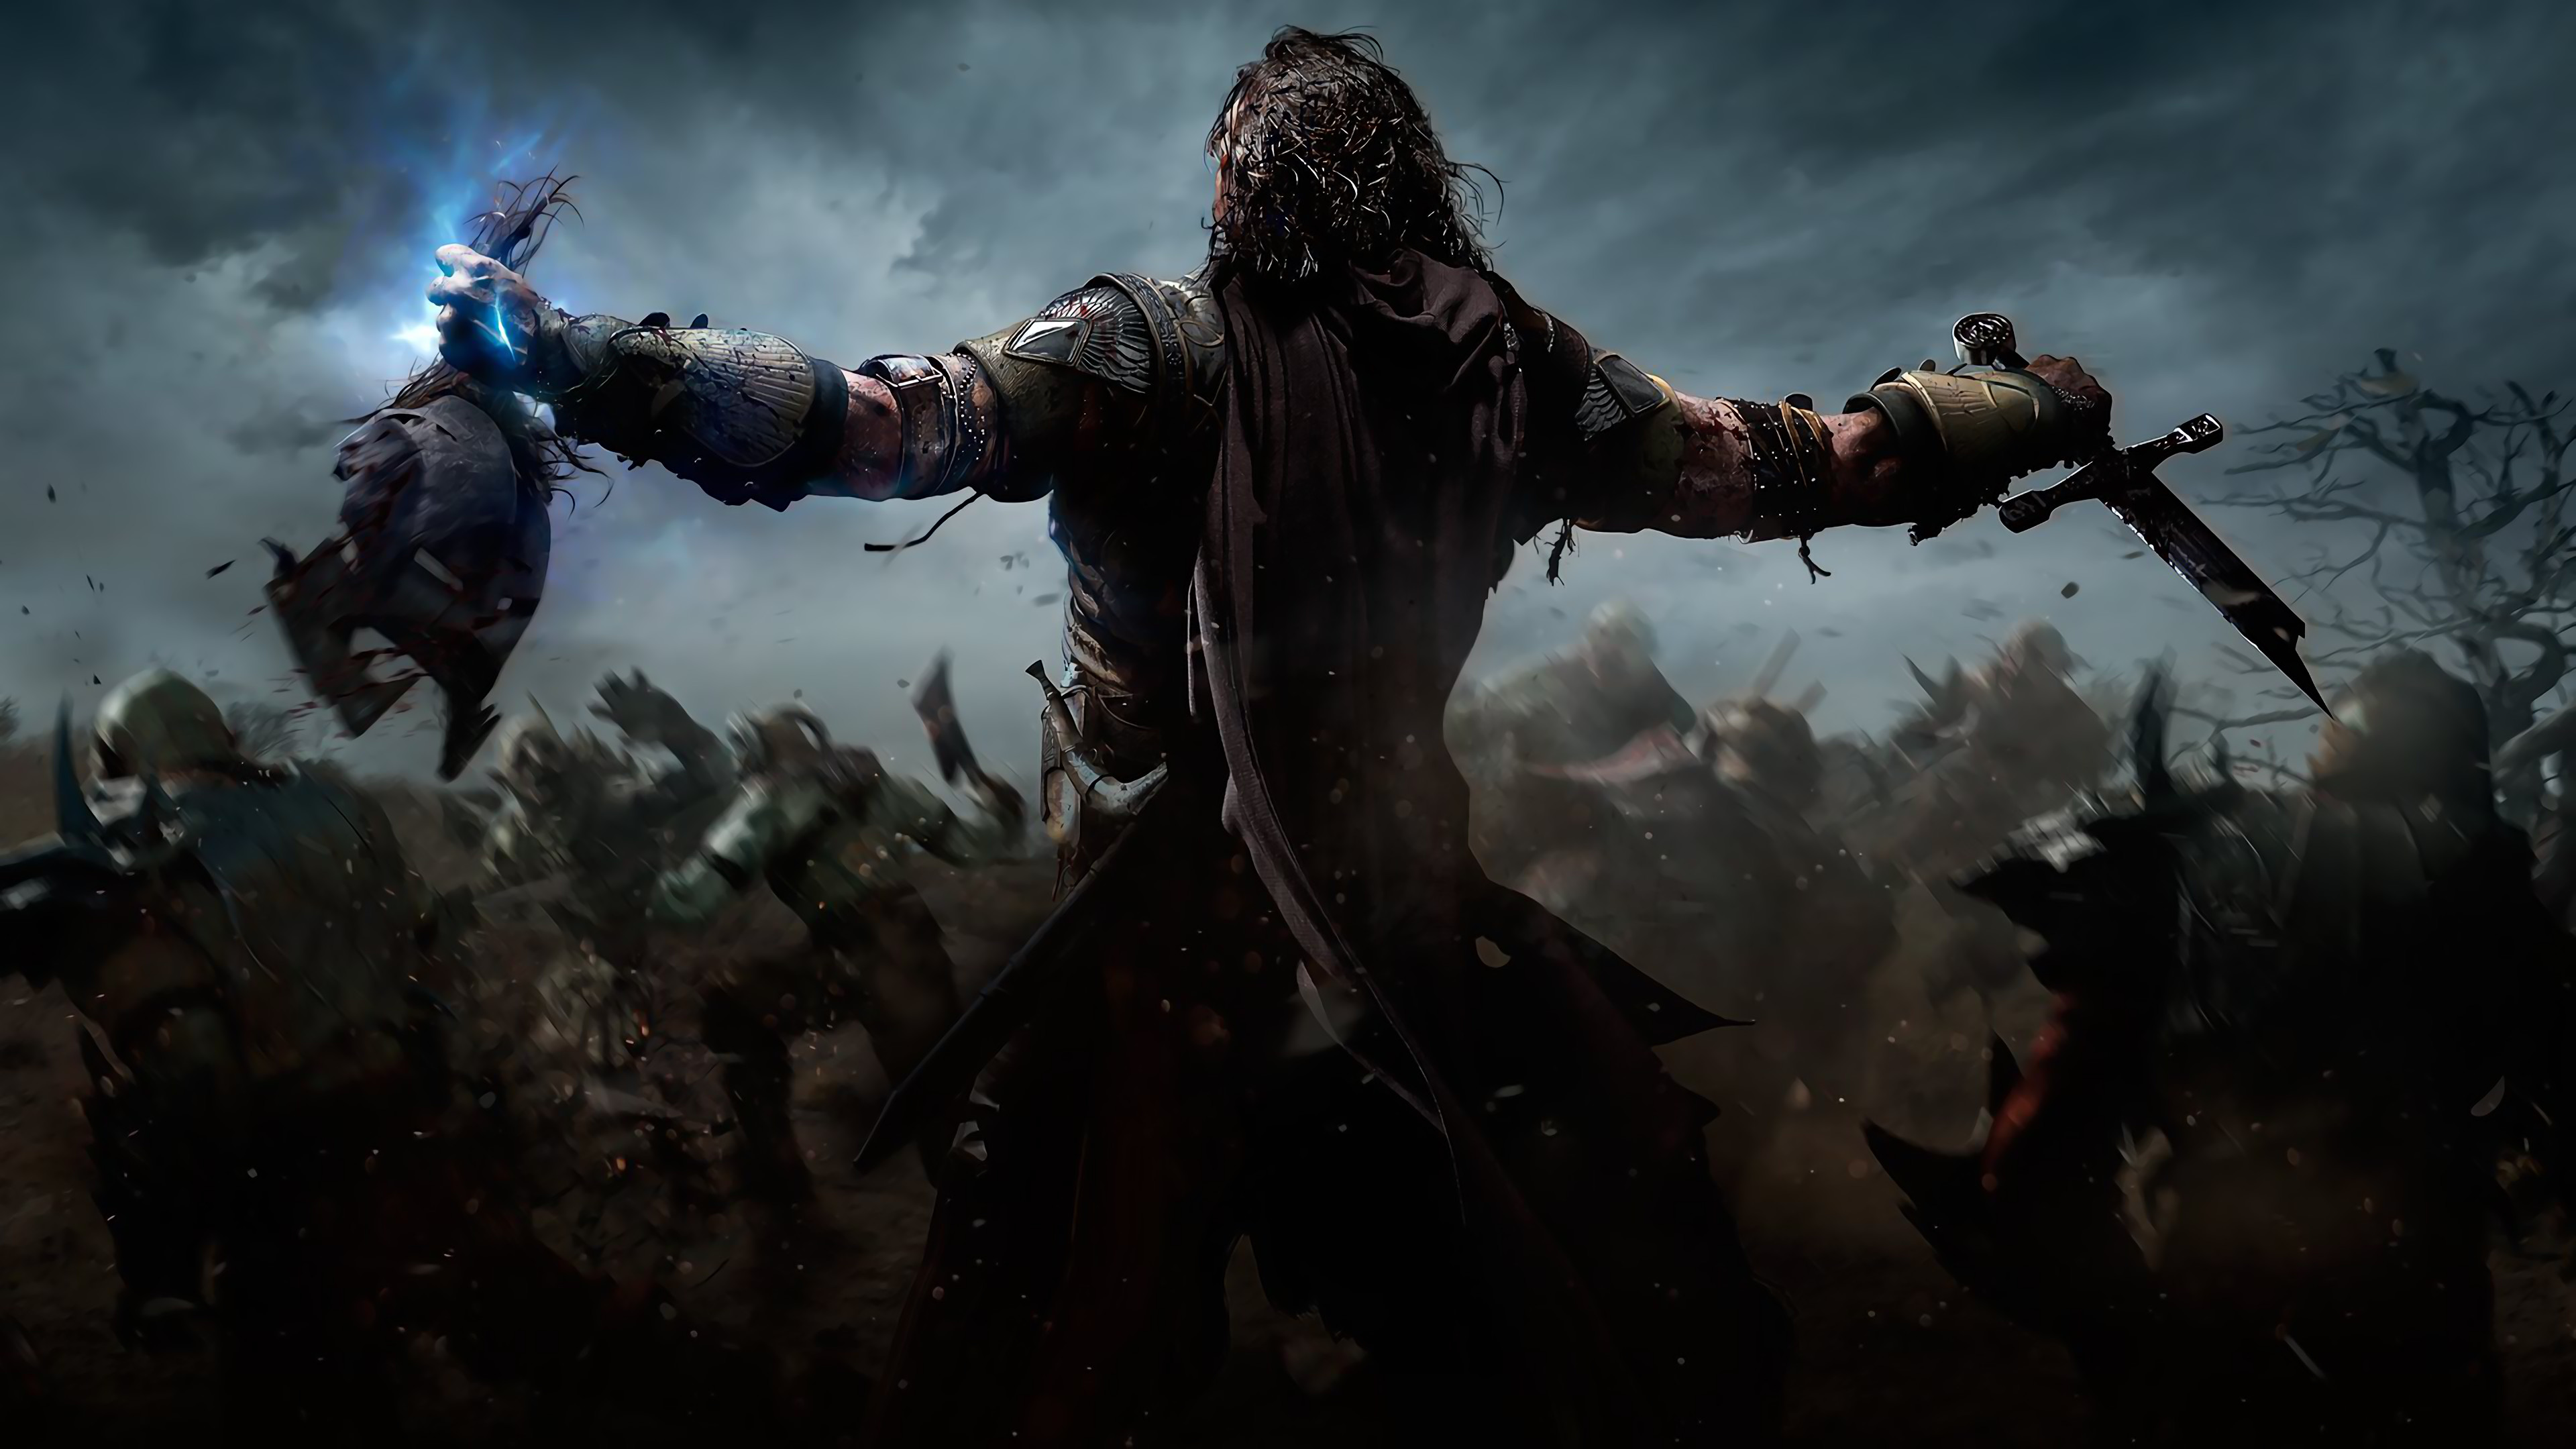 The Shadows of Mordor image for example: …